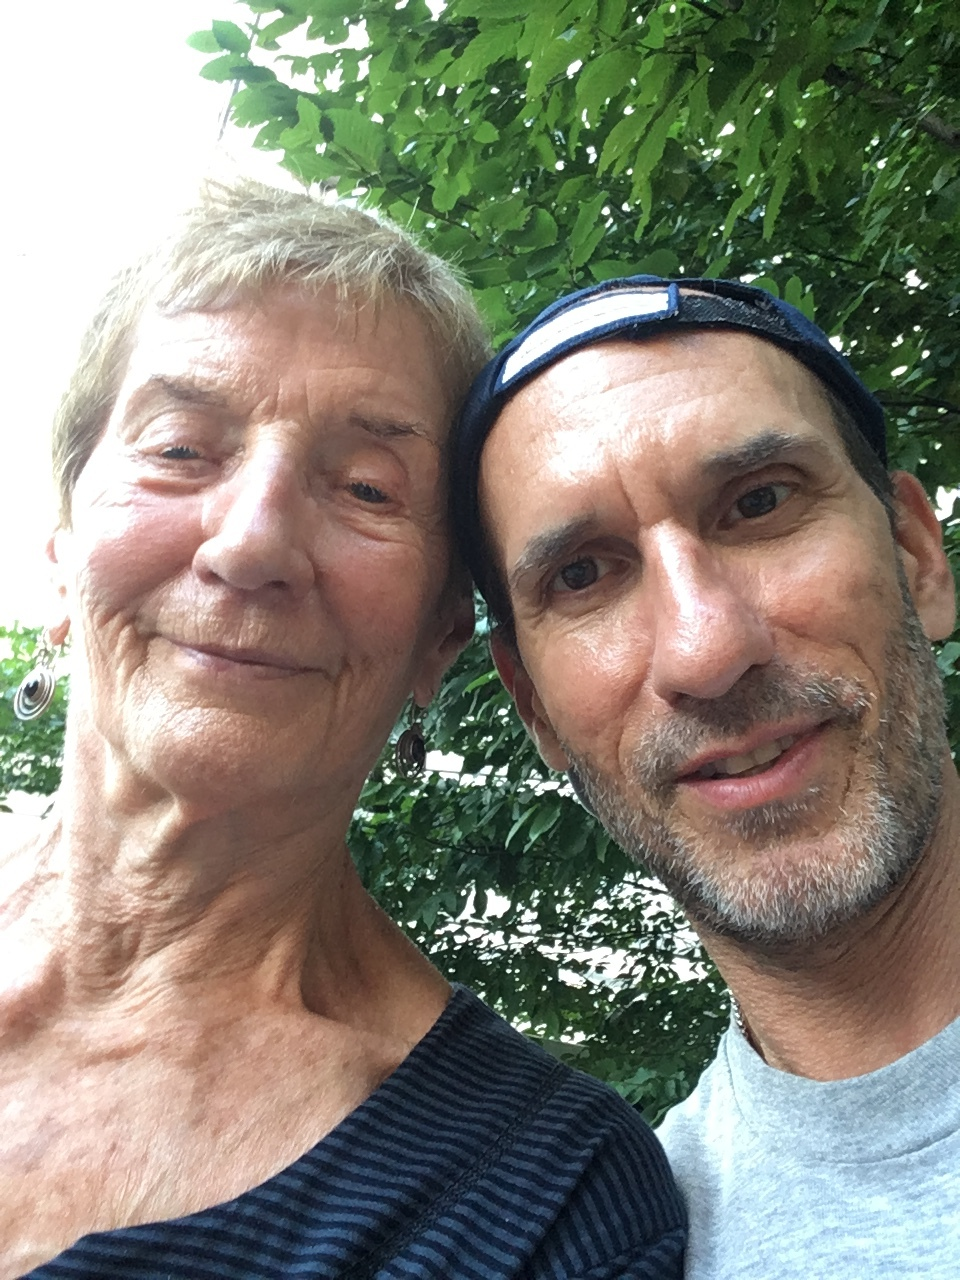 With Mary Crow, my first poetry teacher and former Colorado Poet Laureate, author of Addicted to the Horizon; I Have Tasted the Apple; Borders; and many works of translation, including Woman Who Has Sprouted Wings: Poems by Contemporary Latin American Women Poets. August 4, 2018.